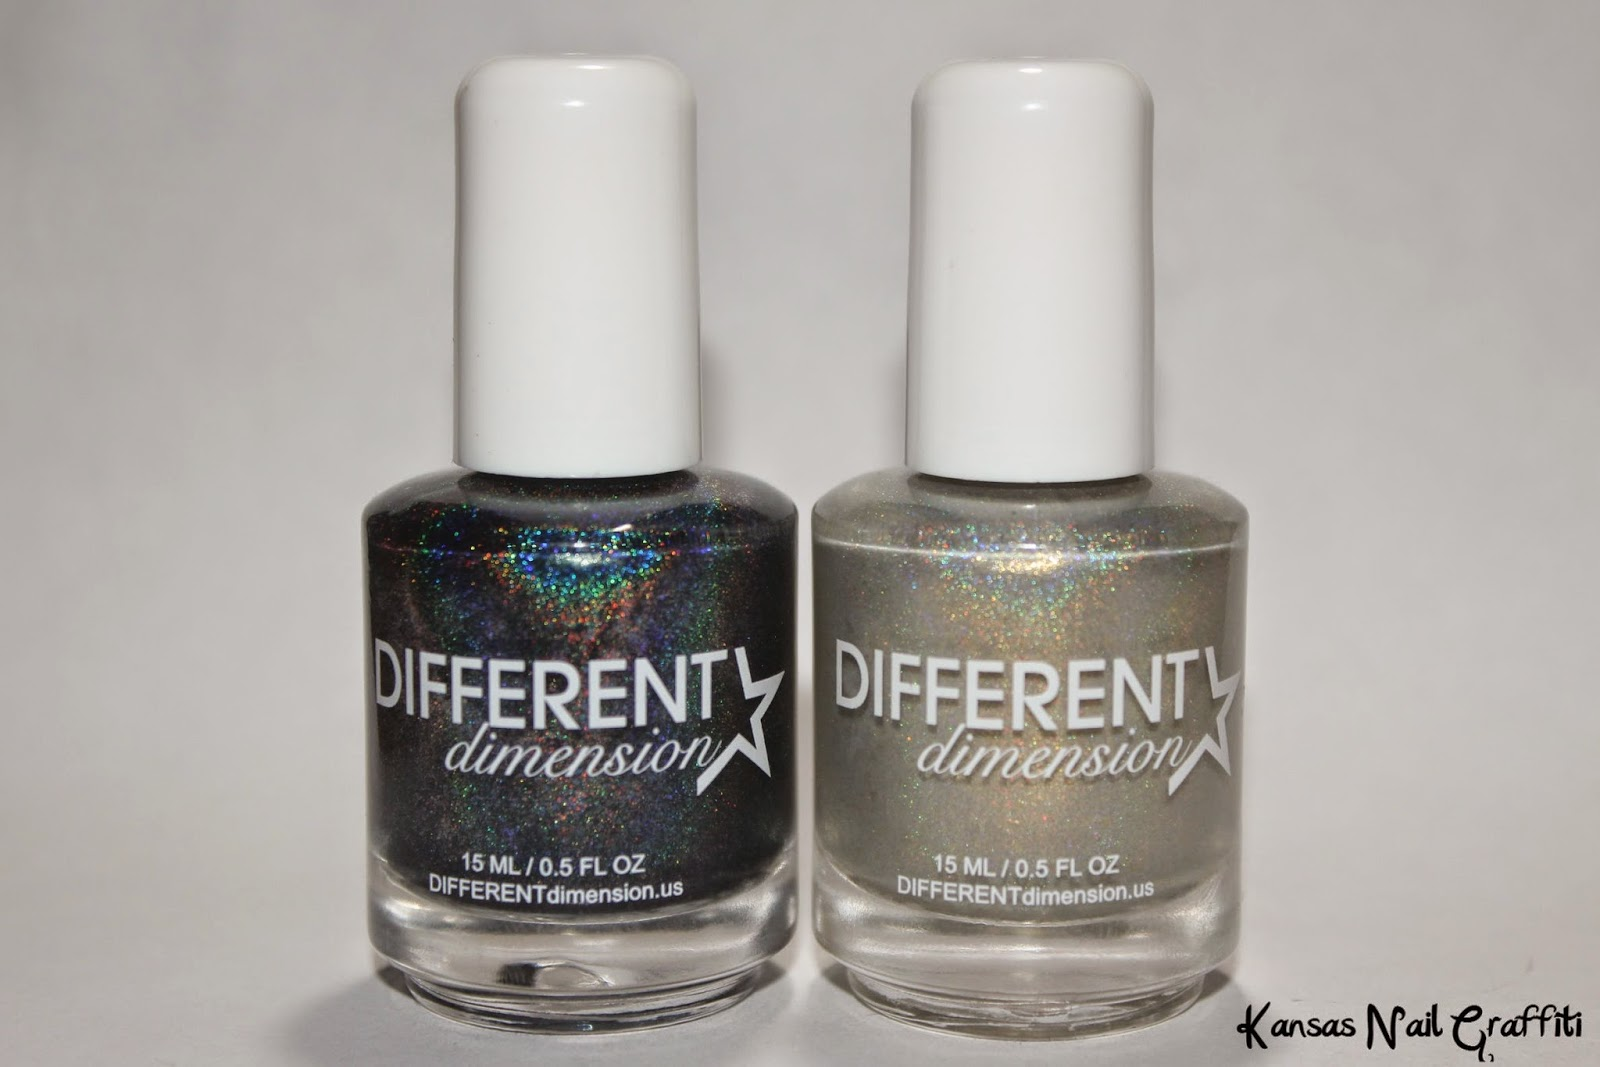 Kansas Nail Graffiti: Gloss48 & Different Dimension exclusive